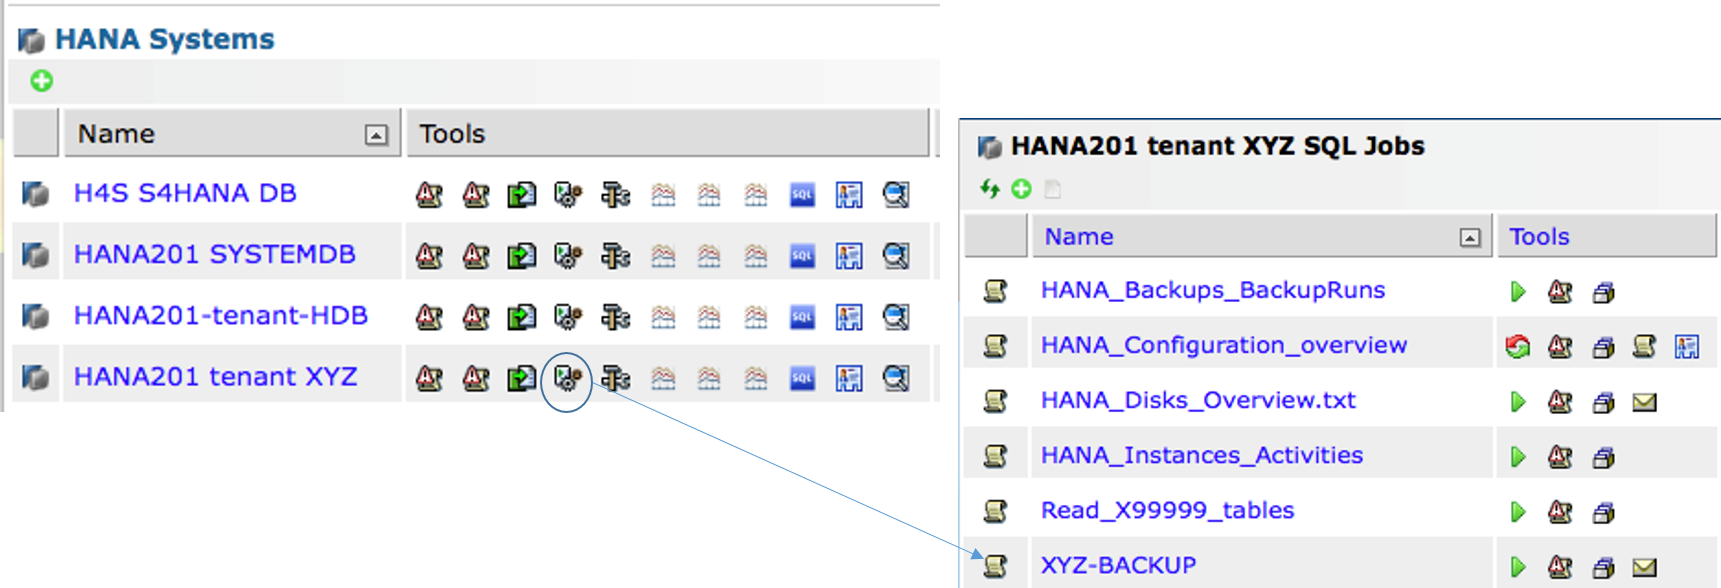 IT-Conductor SAP Basis Automation HANA Backup Create SQL Job